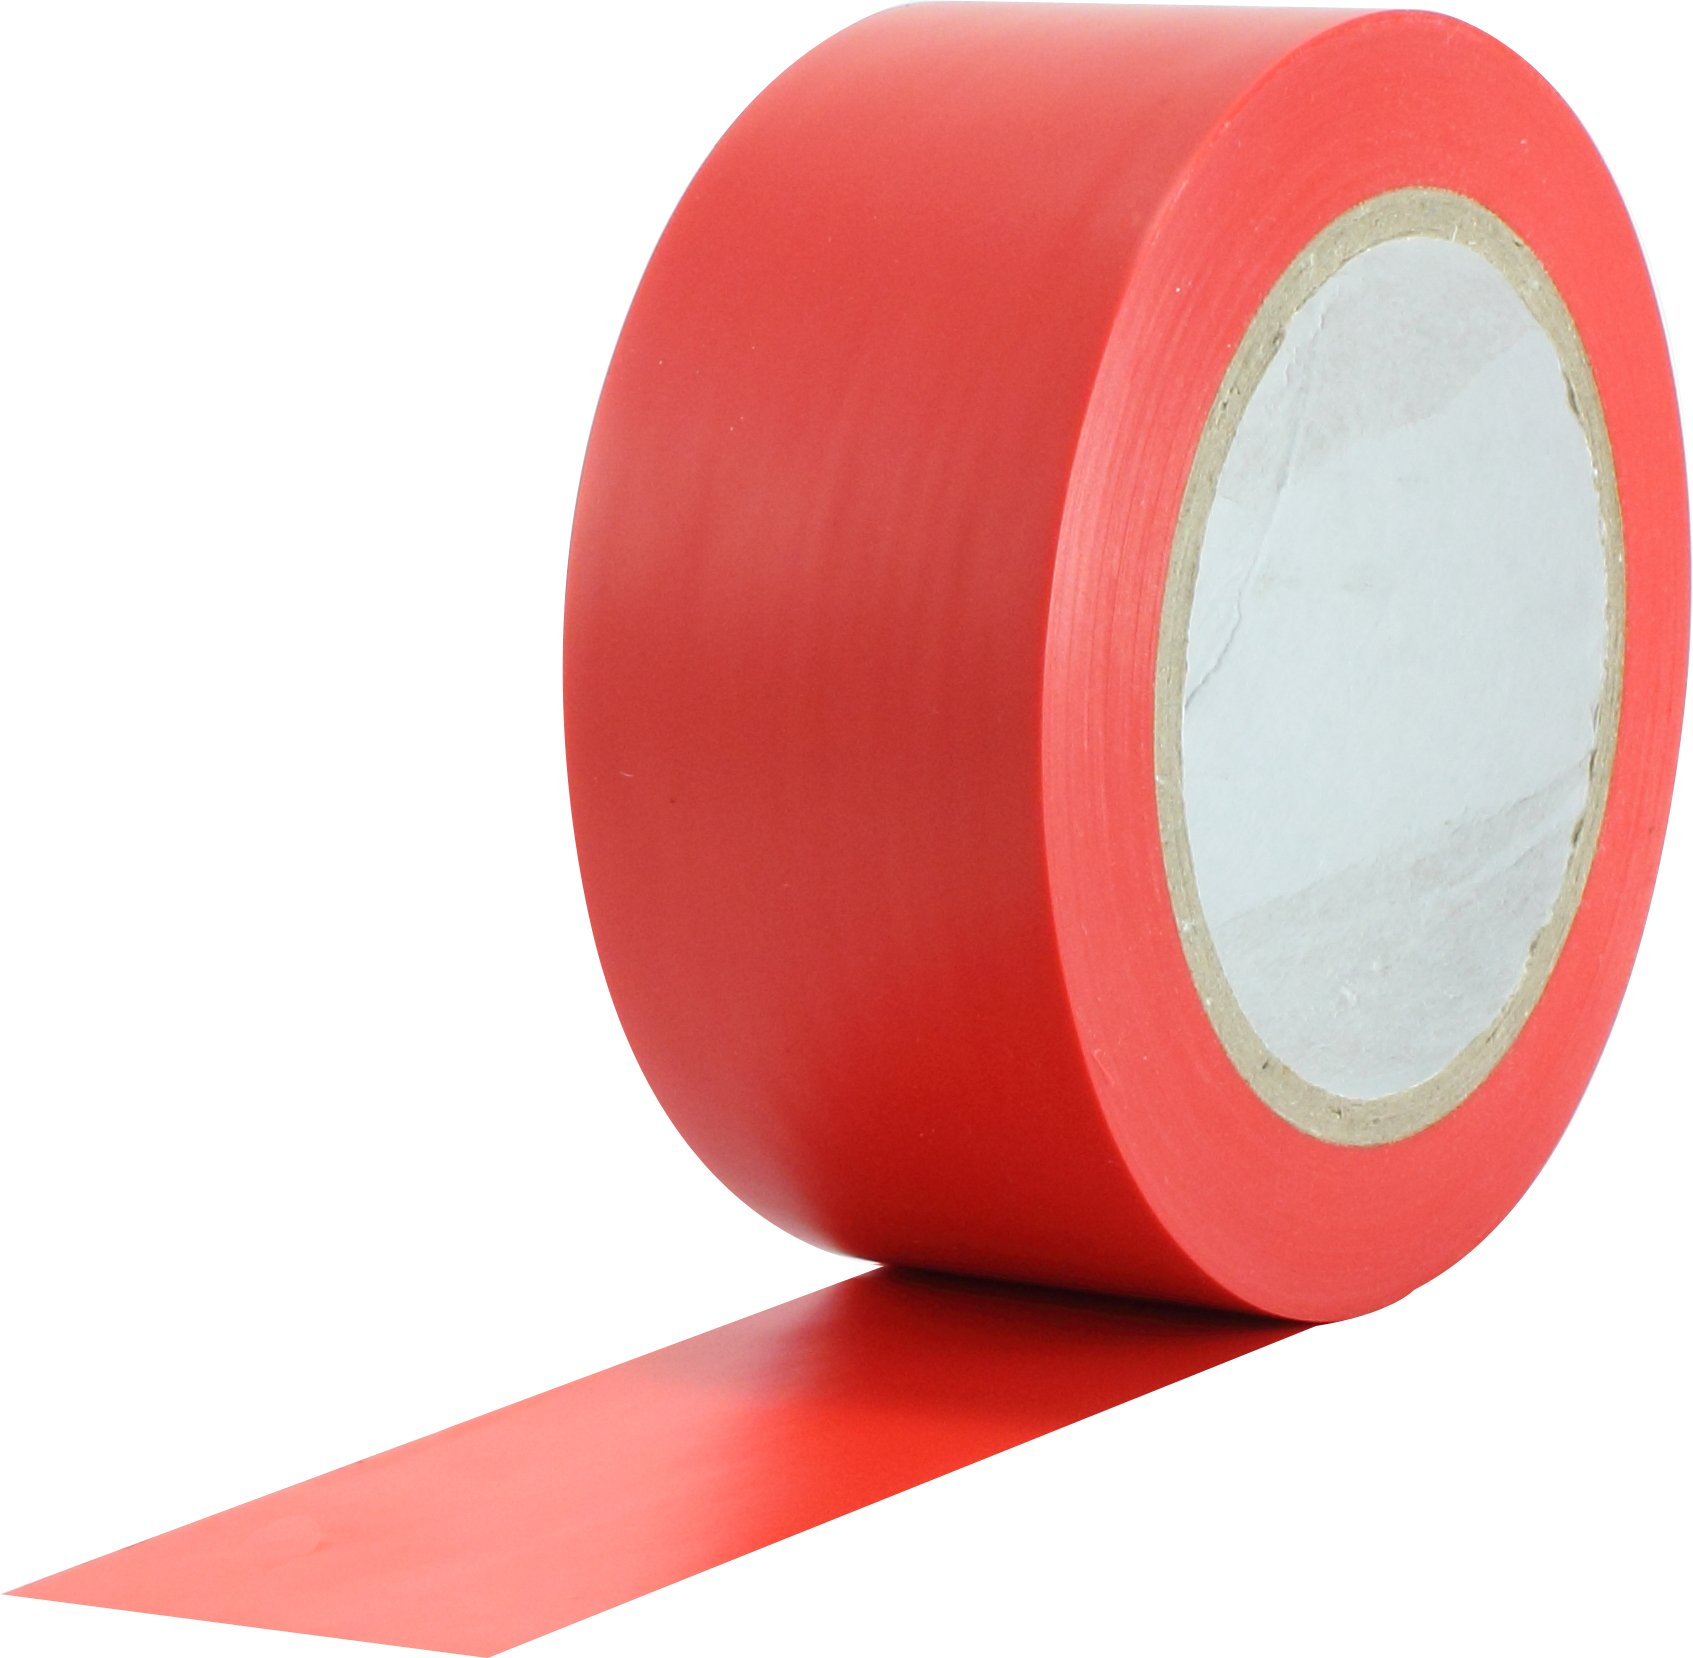 ProTapes Pro 50 Premium Vinyl Safety Marking and Dance Floor Splicing Tape, 6 mils Thick, 36 yds Length x 2'' Width, Red (Pack of 1)